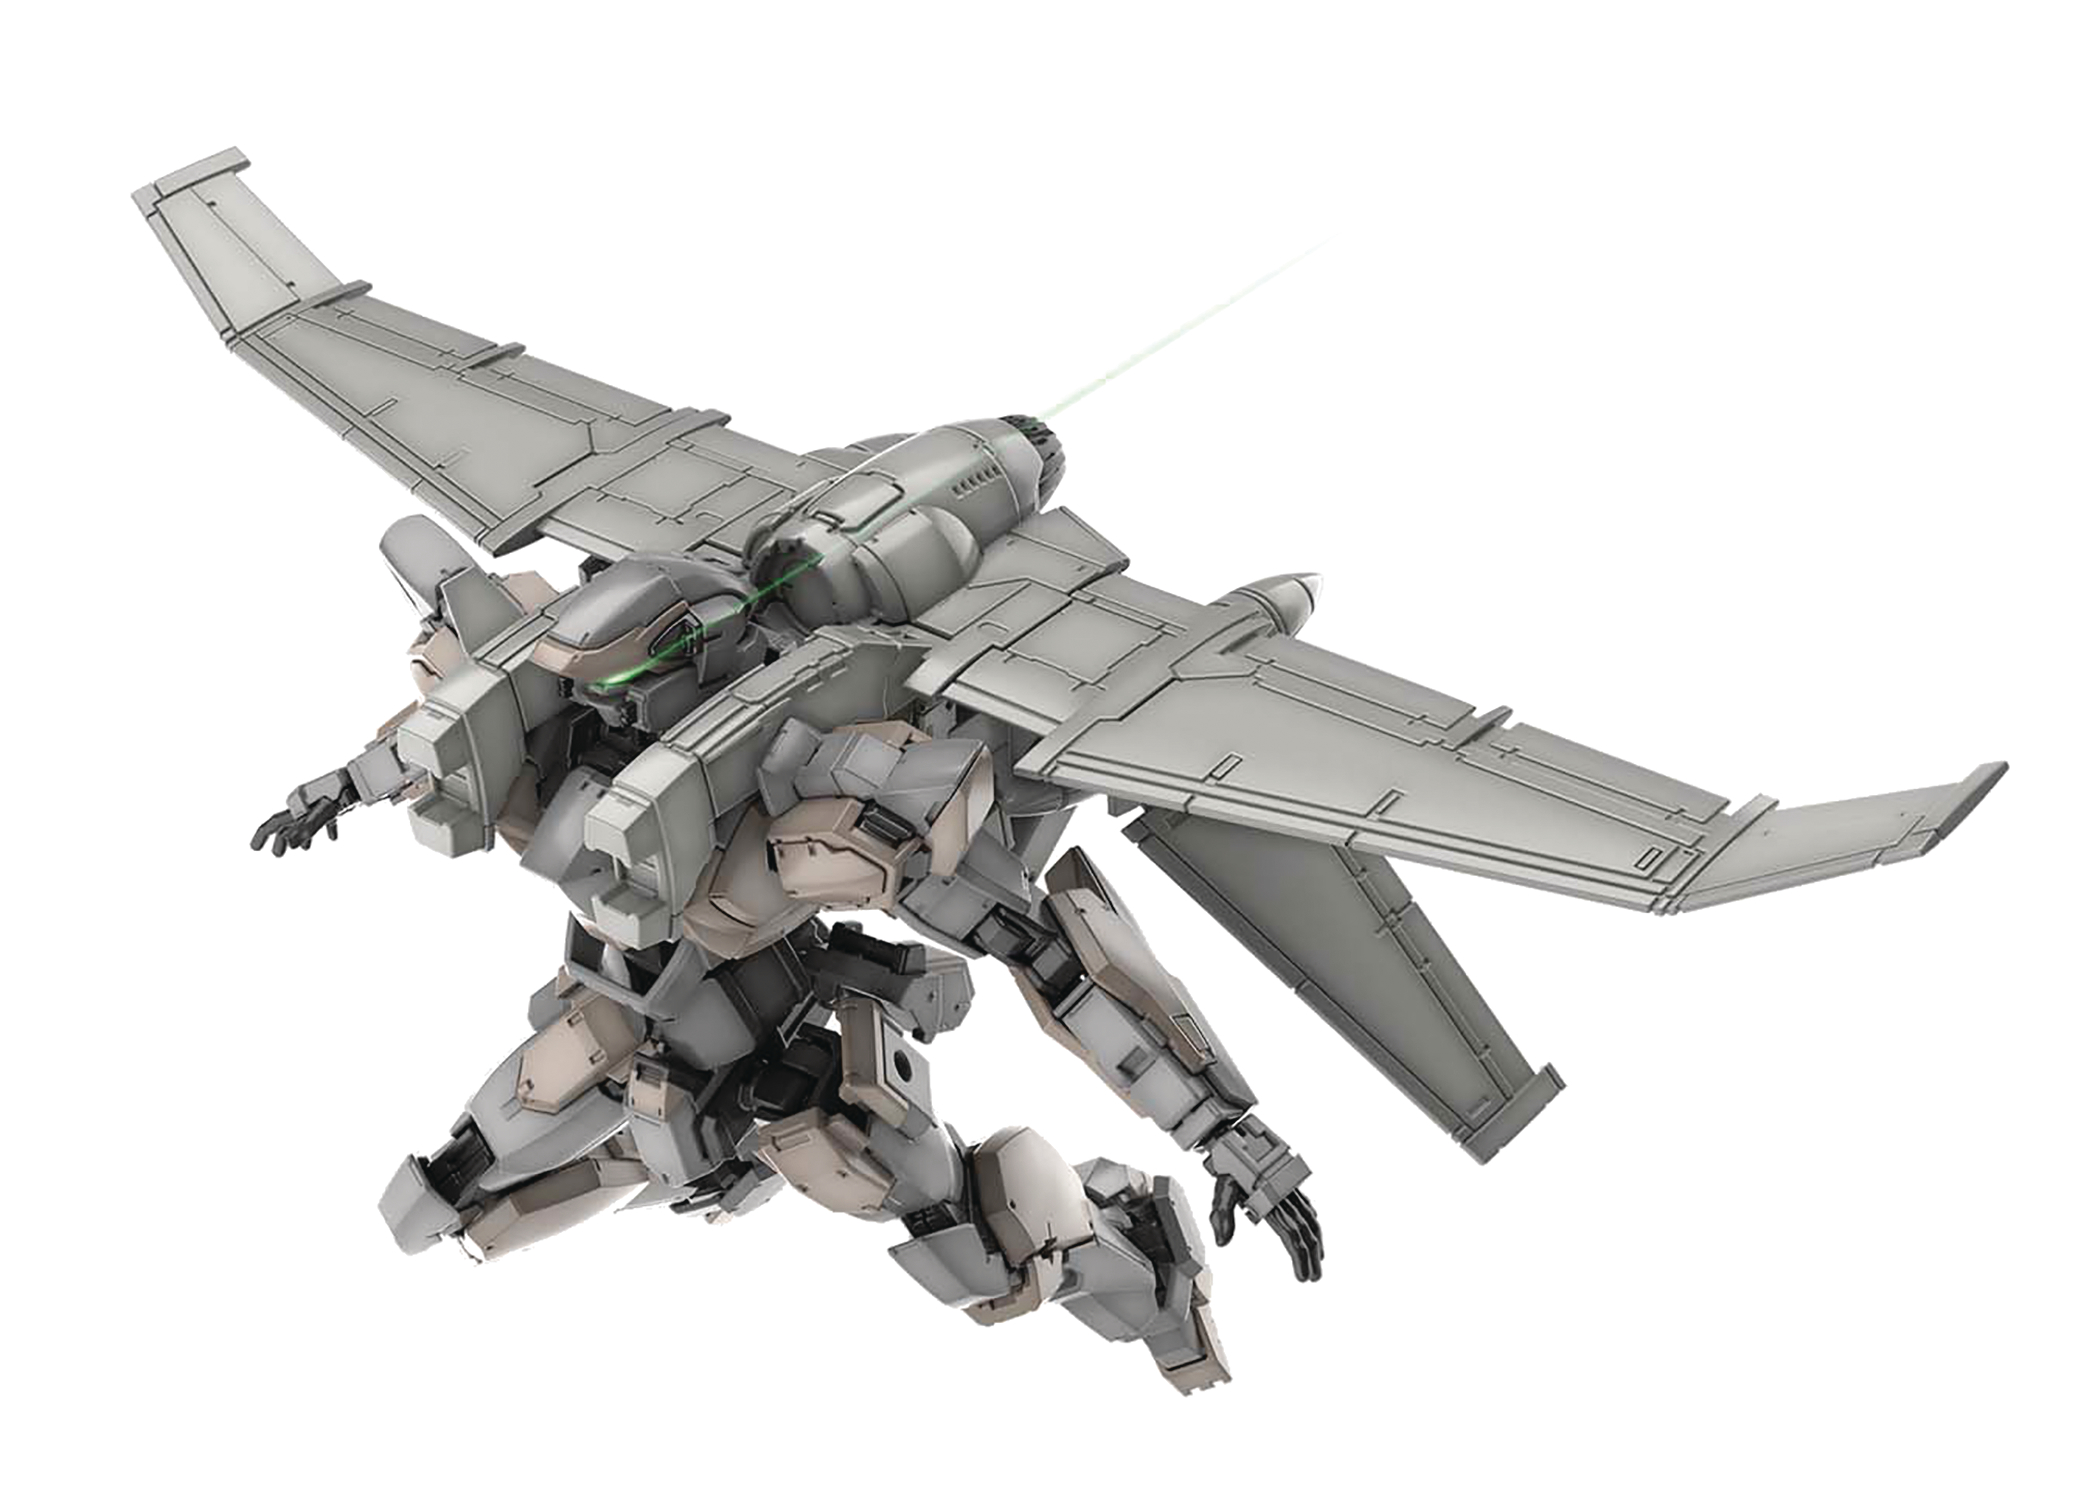 FULL METAL PANIC IV ARBLEST IV HG 1/60 MDL KIT EMERGENCY VER